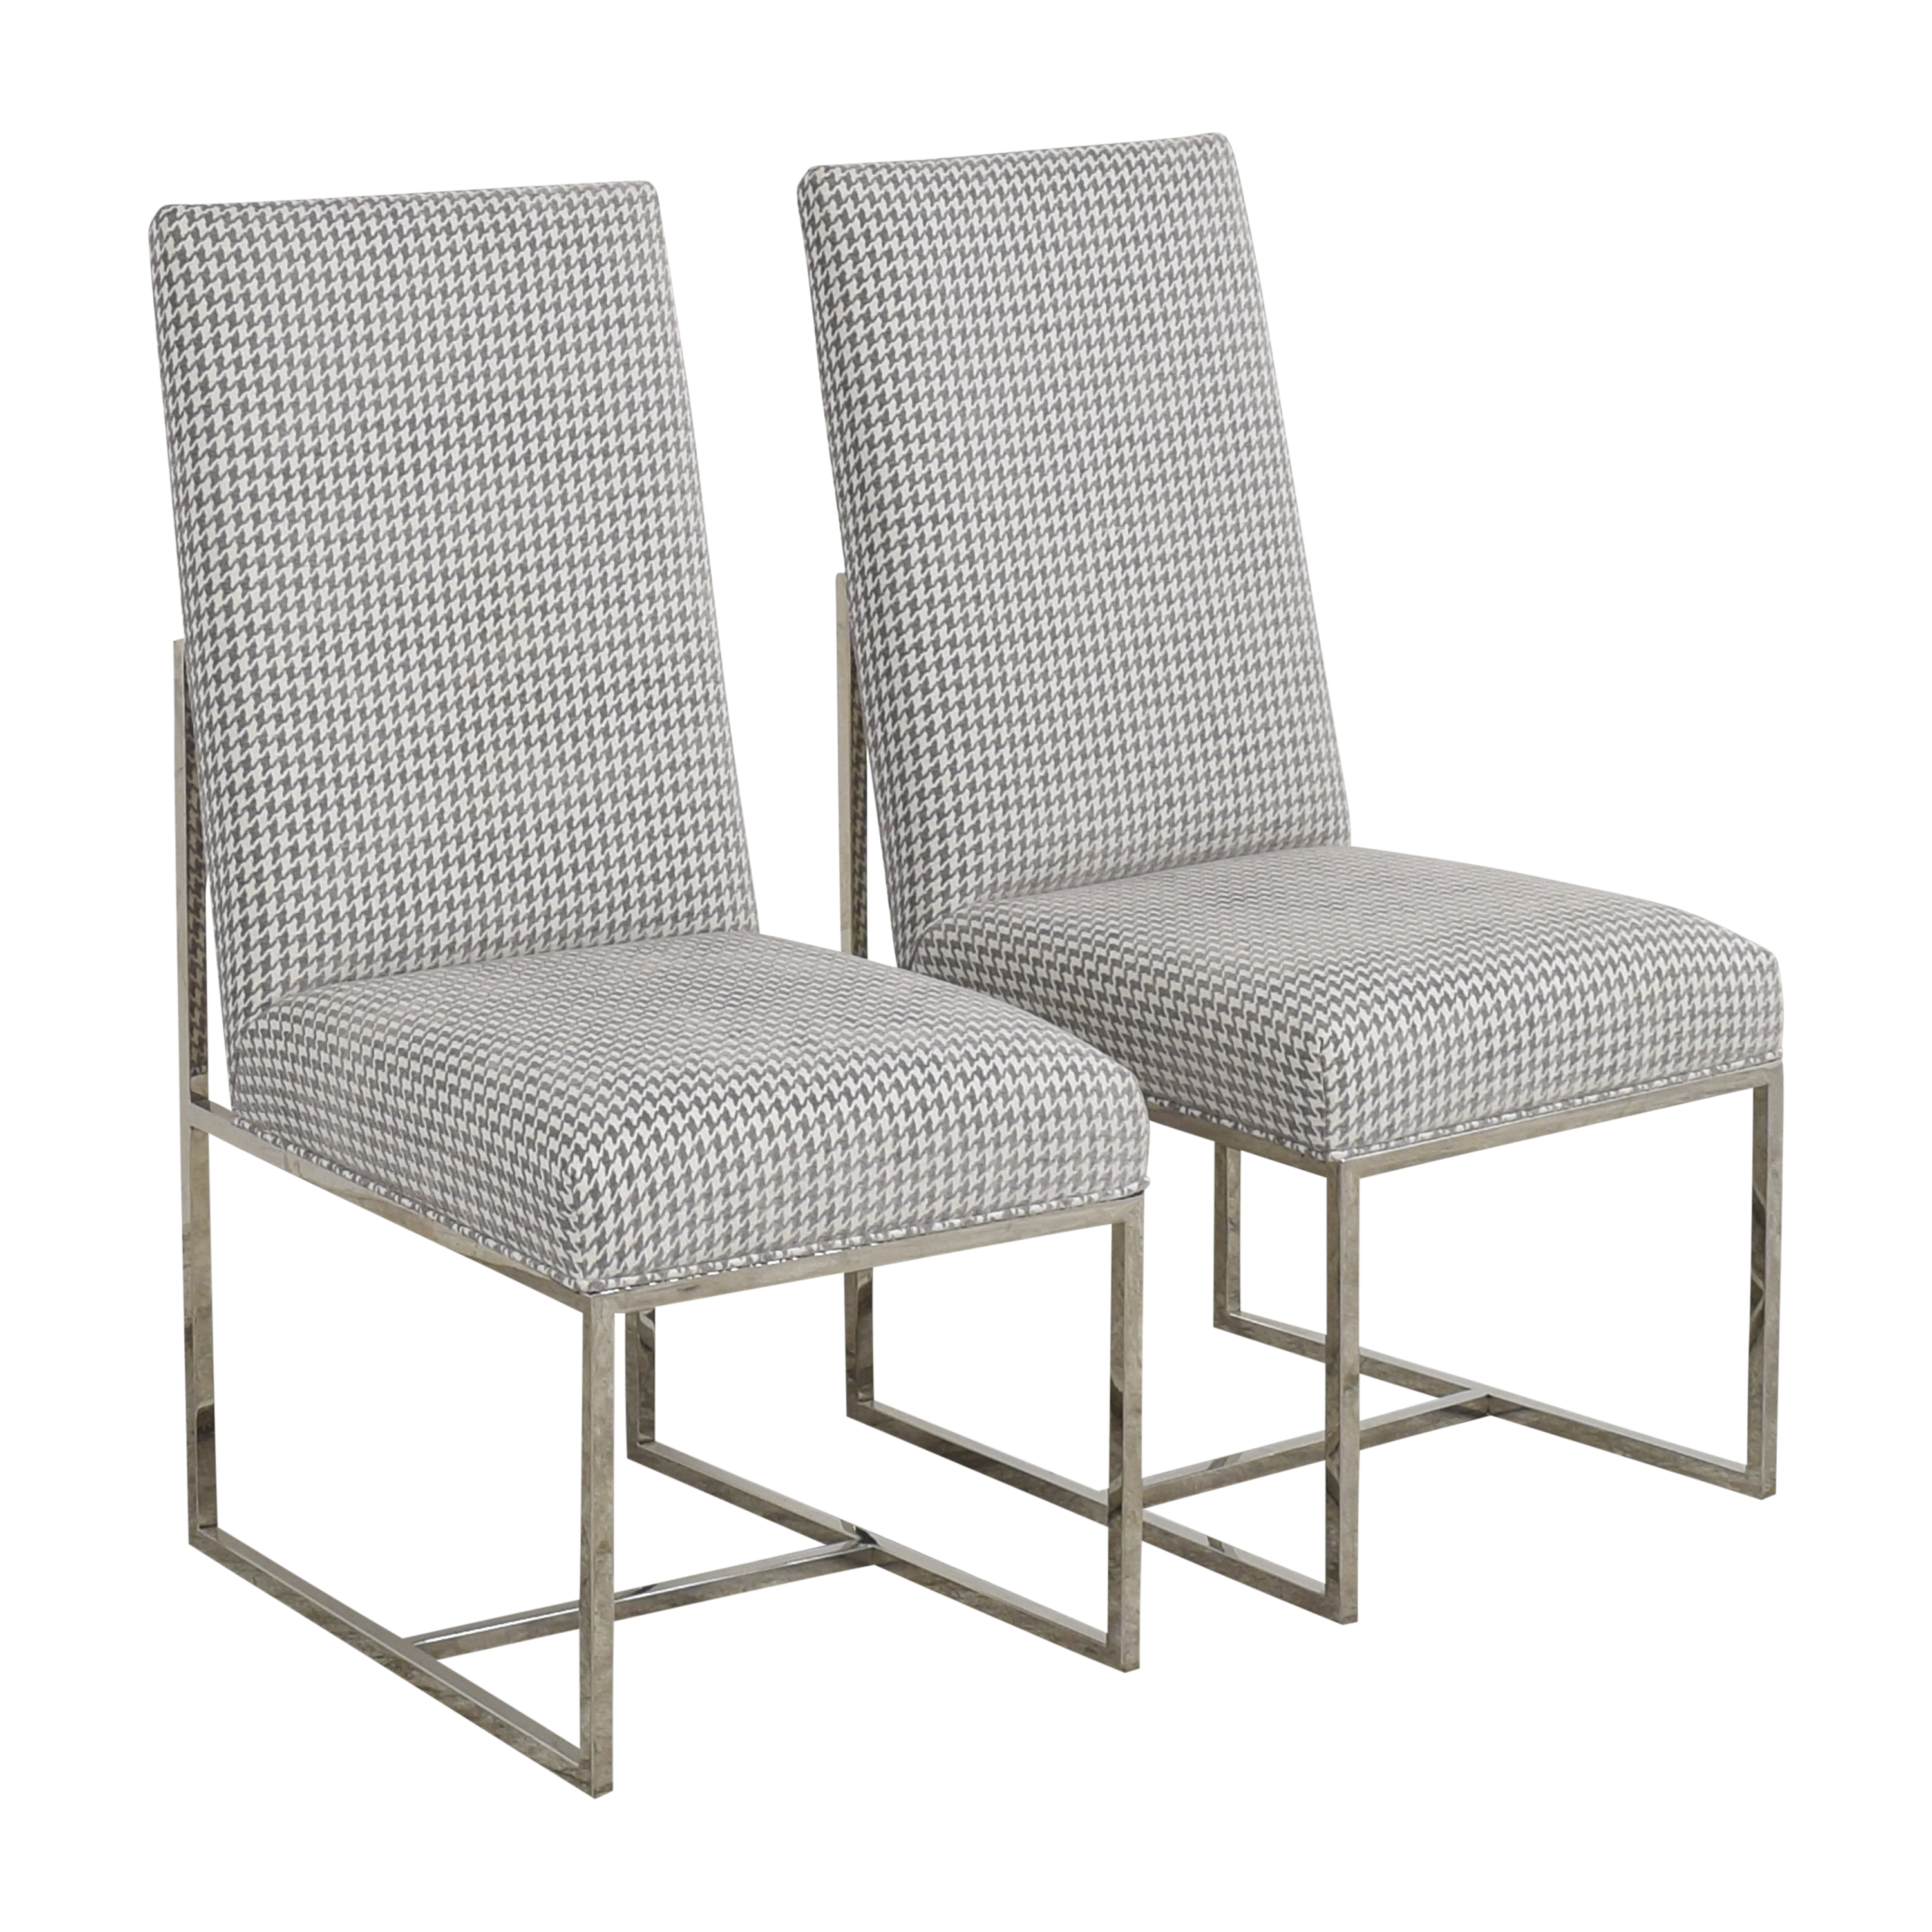 Mitchell Gold + Bob Williams Gage Tall Dining Chairs / Chairs